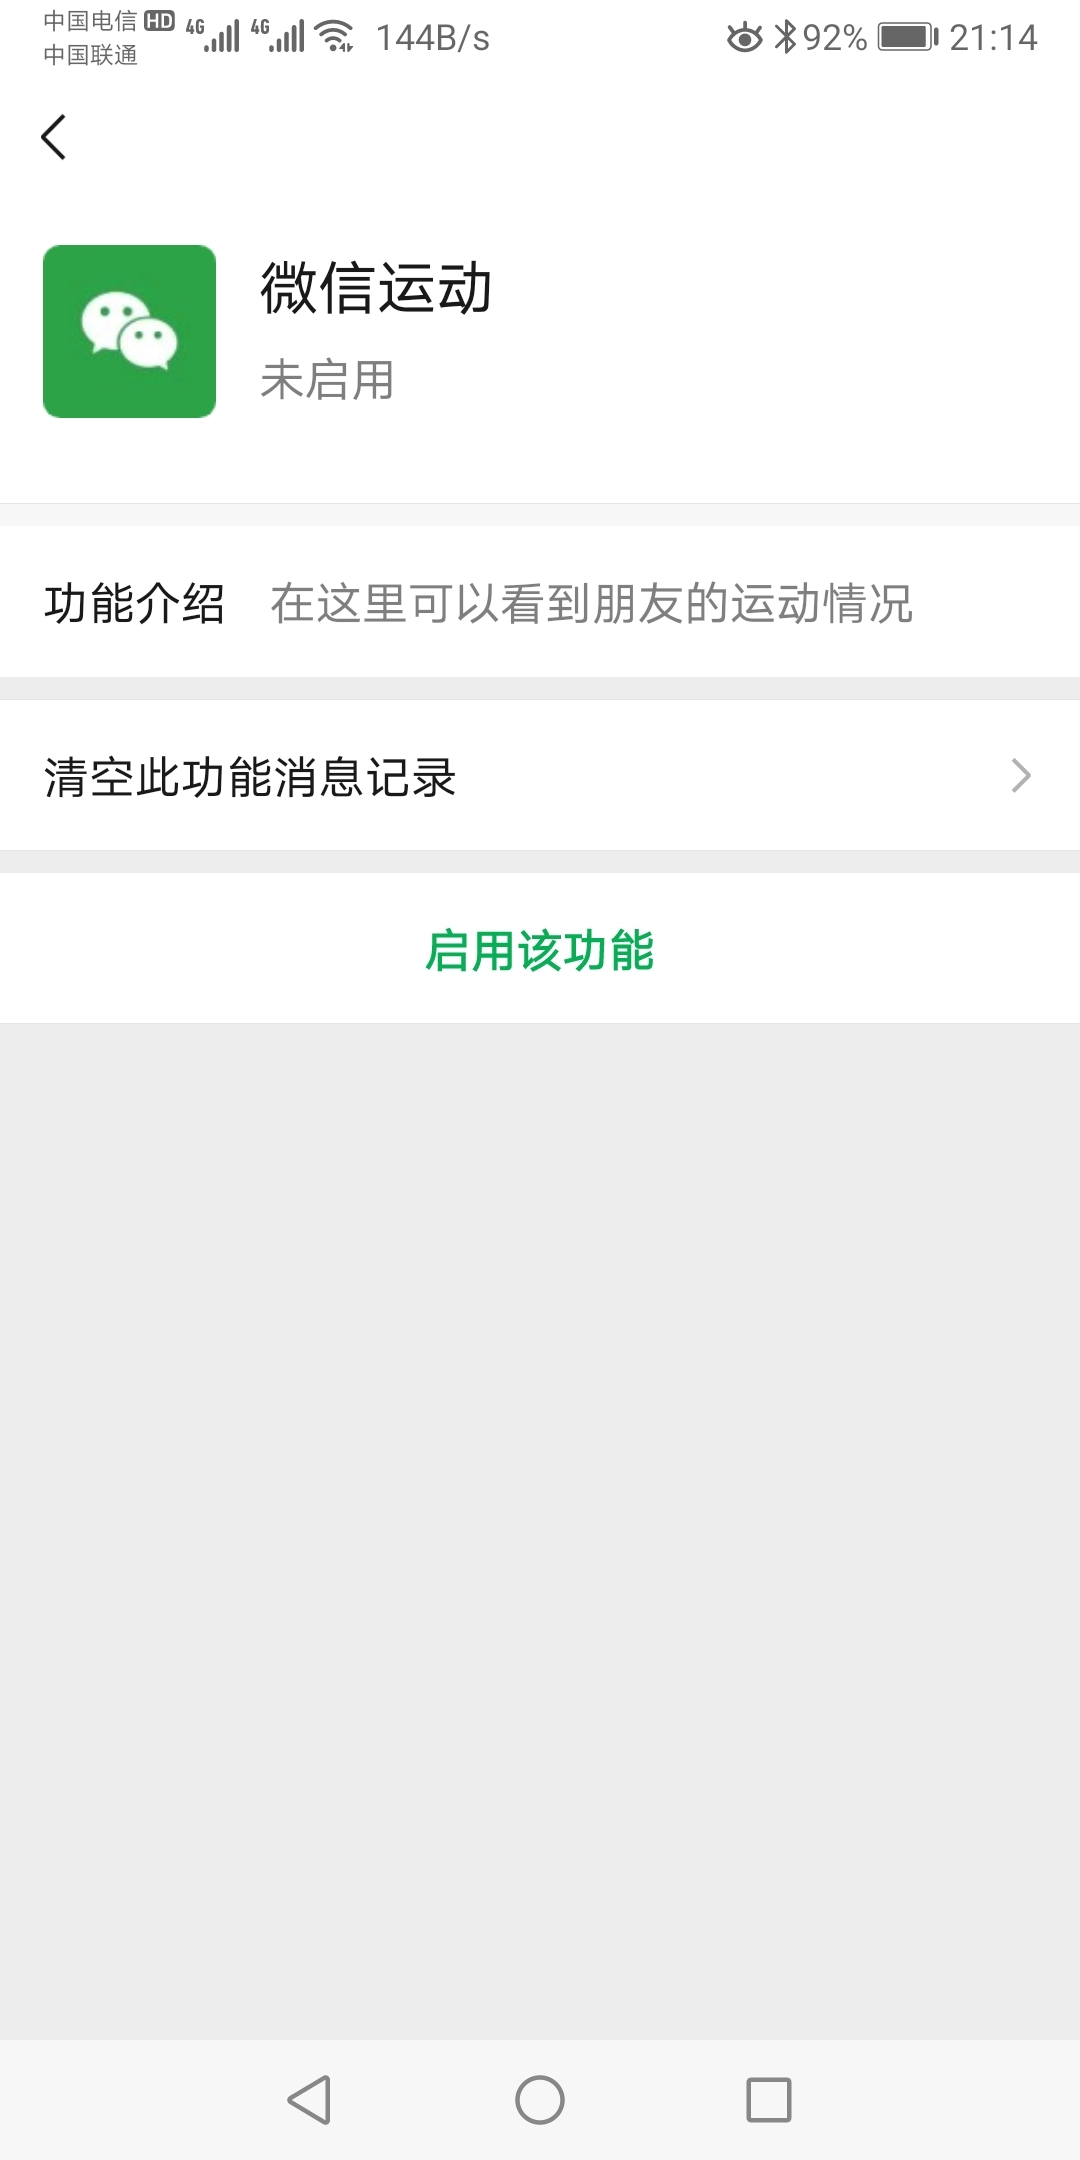 Screenshot_20200520_211428_com.tencent.mm.jpg